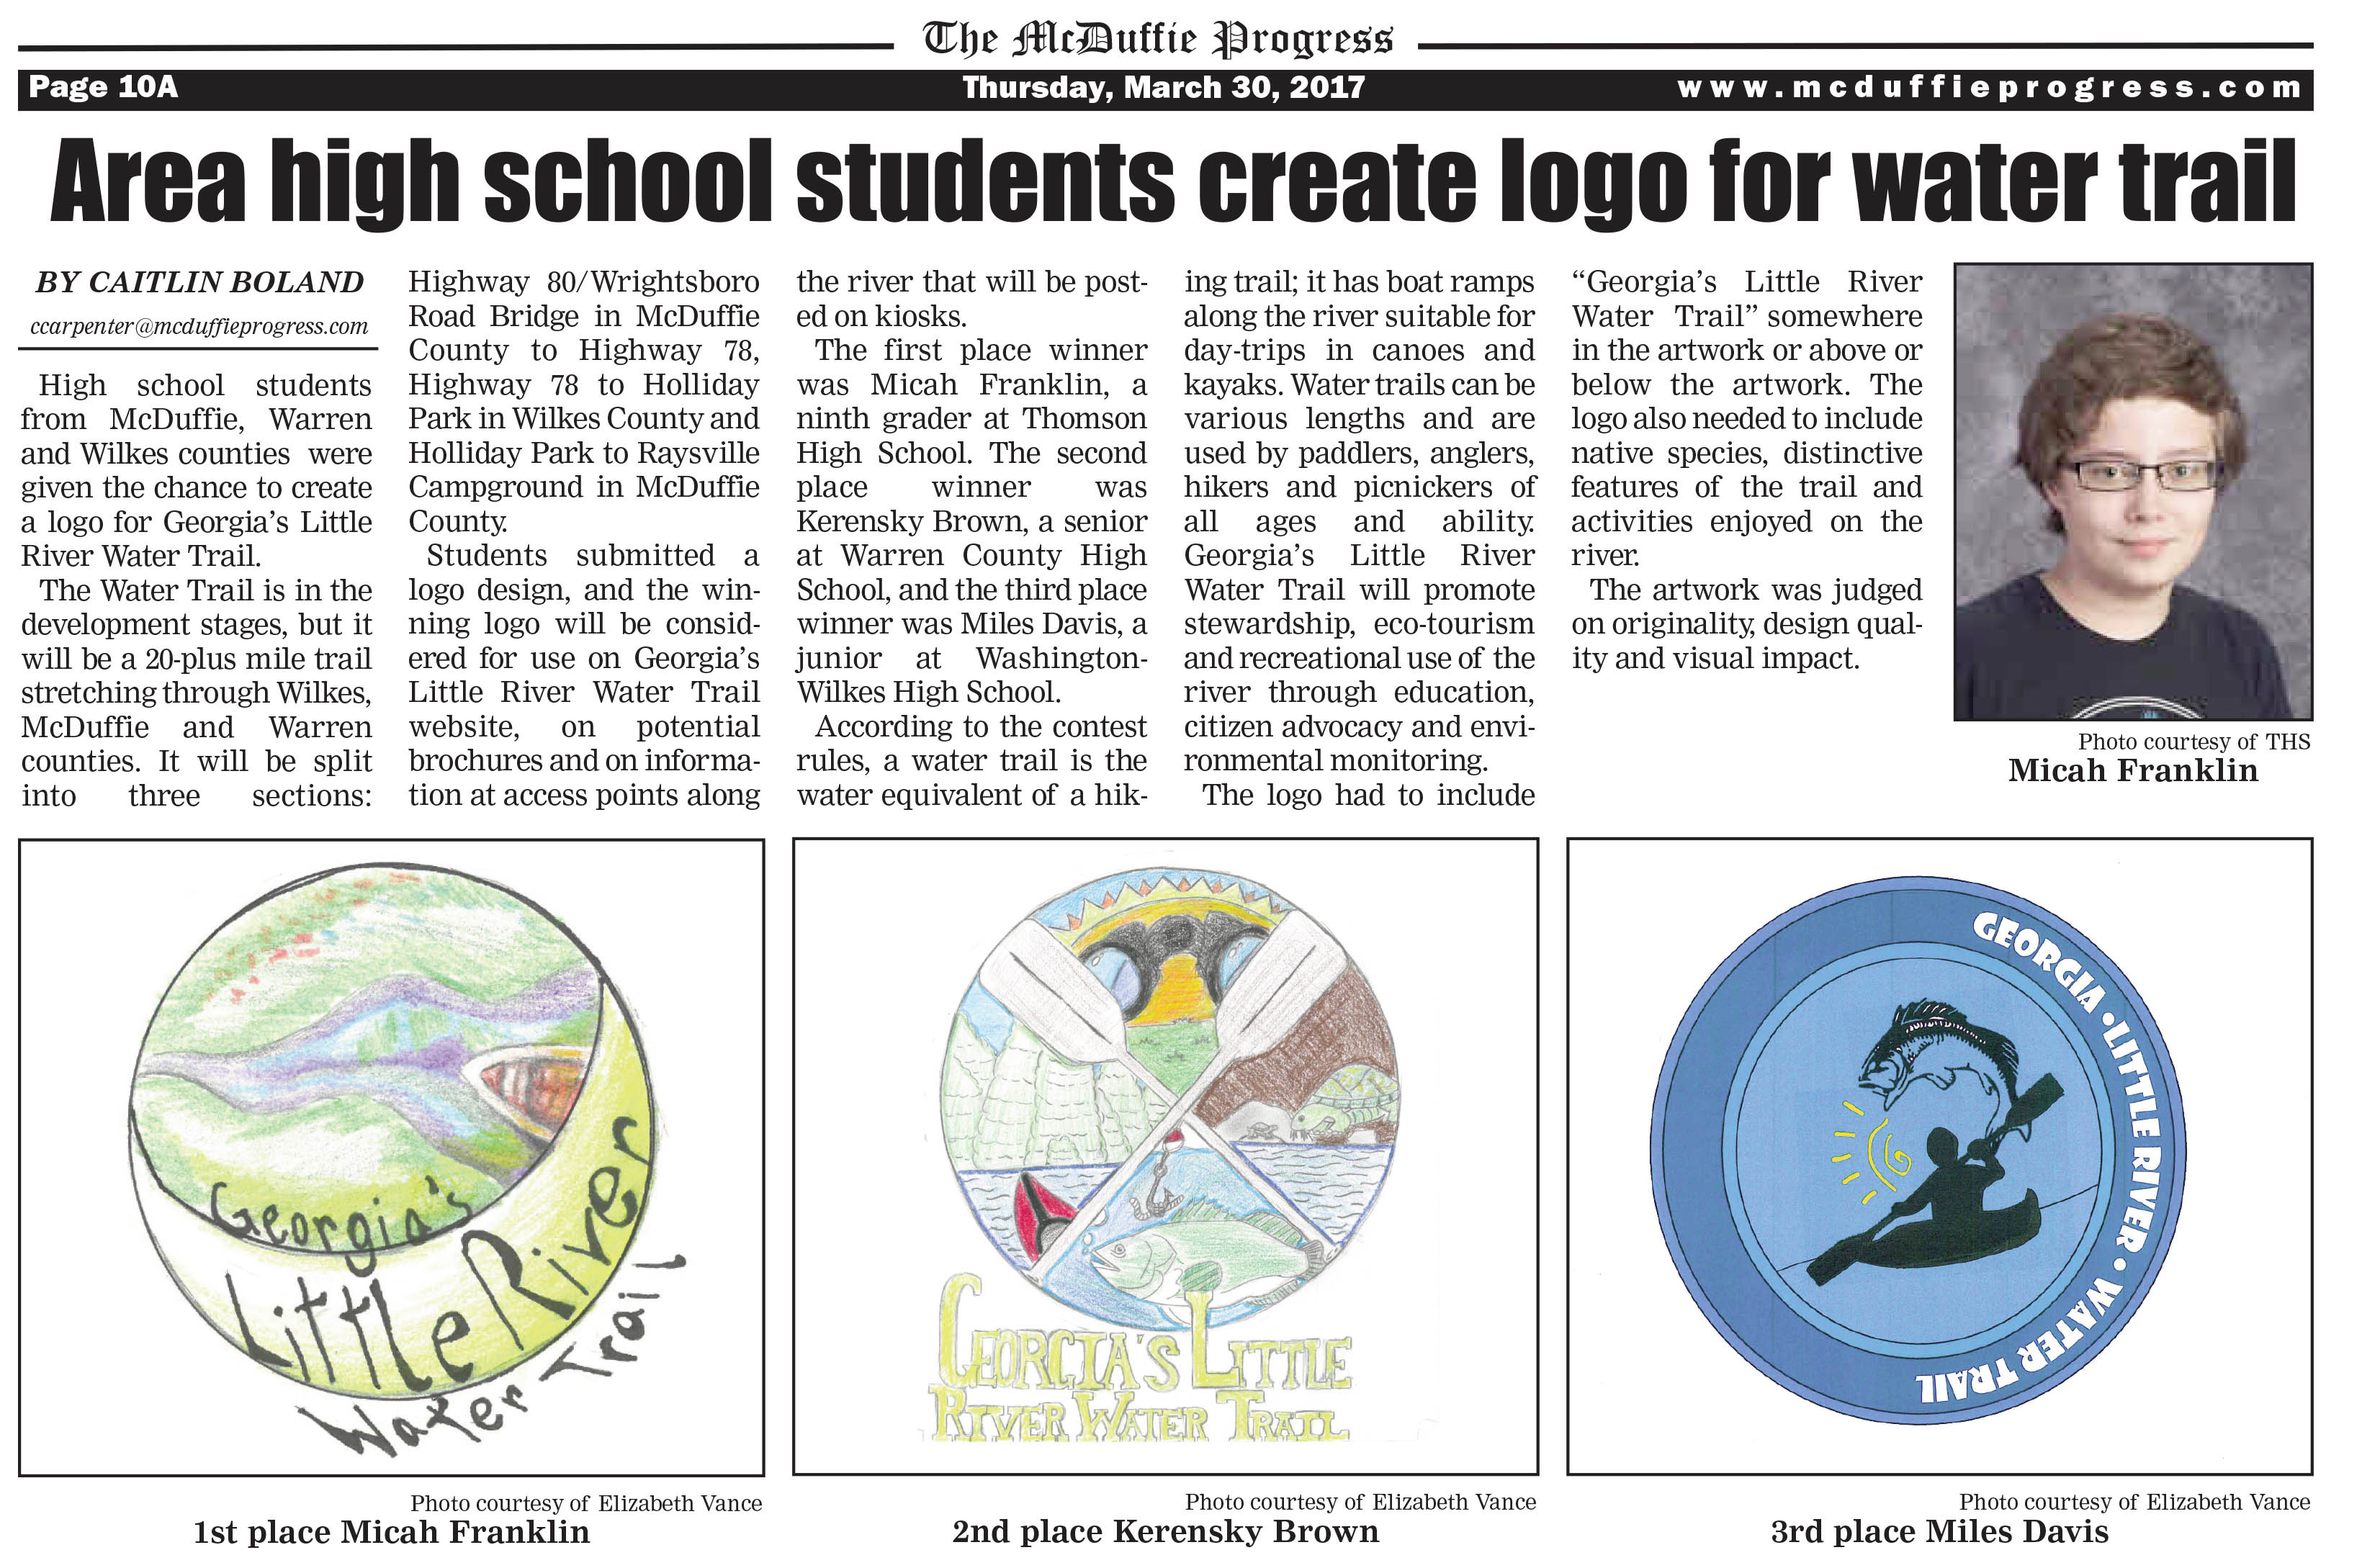 YRWT Logo Contest News Article 2